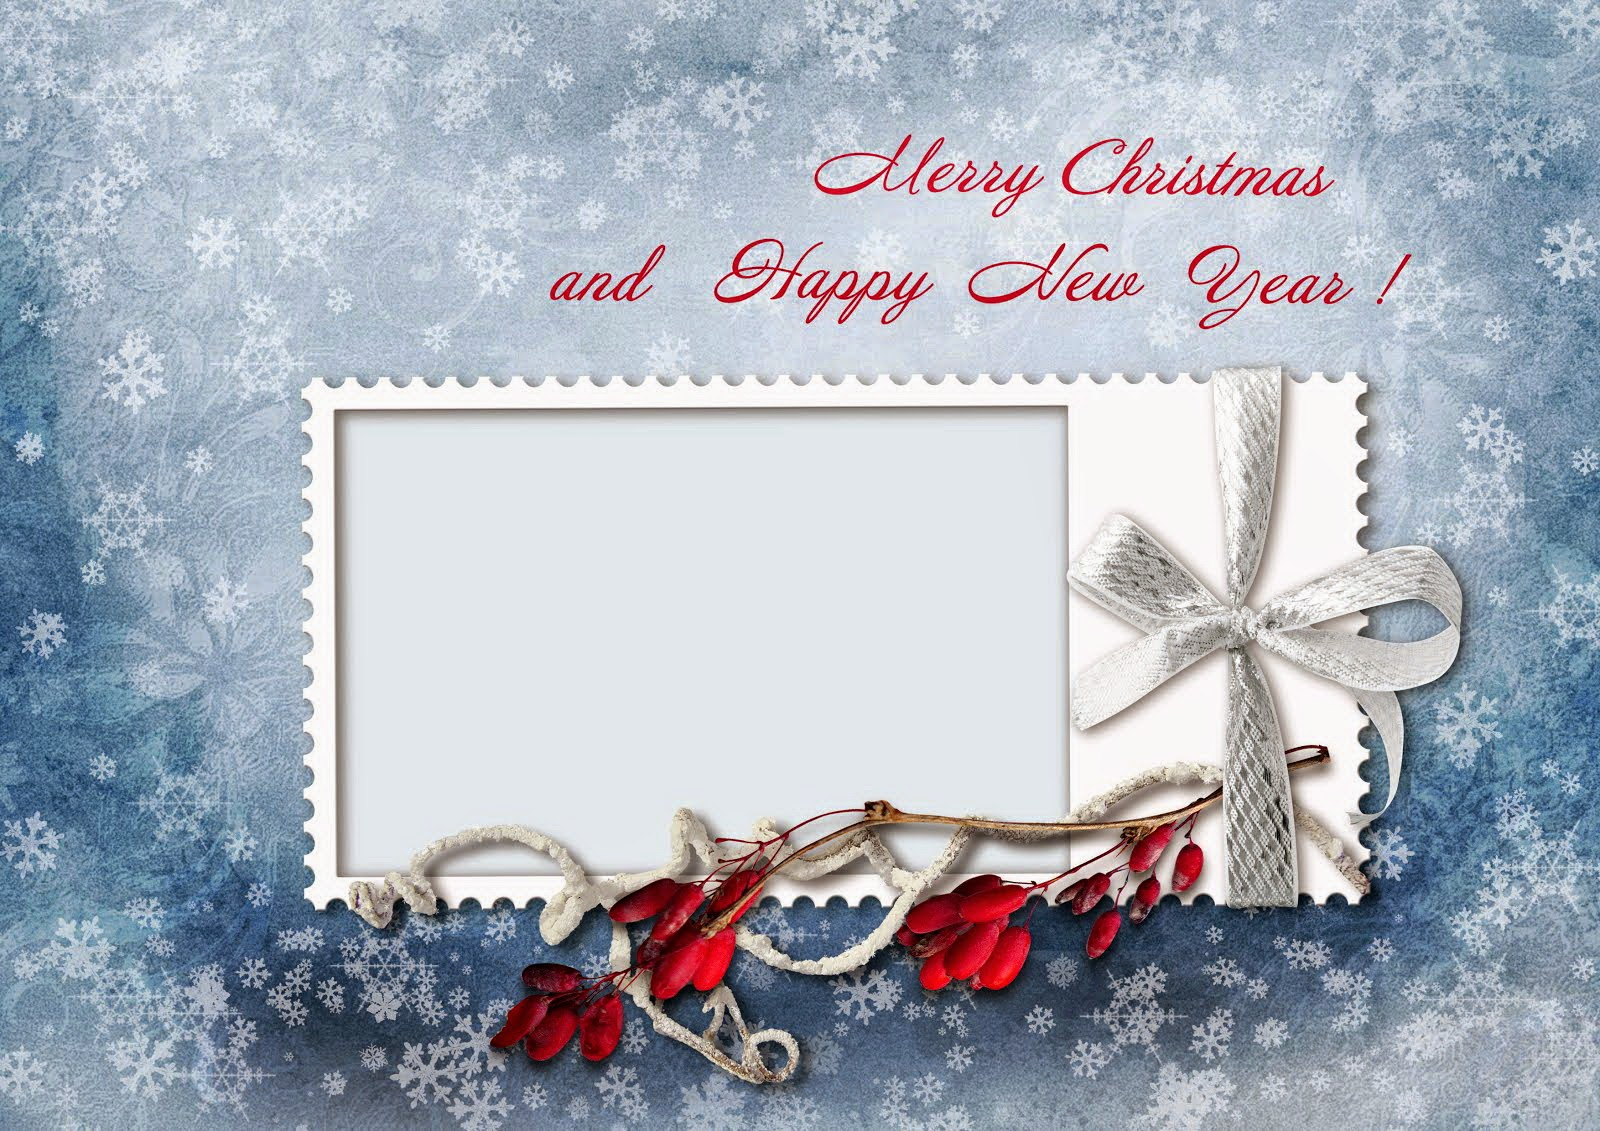 Merry-Christmas-and-Happy-new-year-greetings-card-with-photo-space-silver-BG.jpg